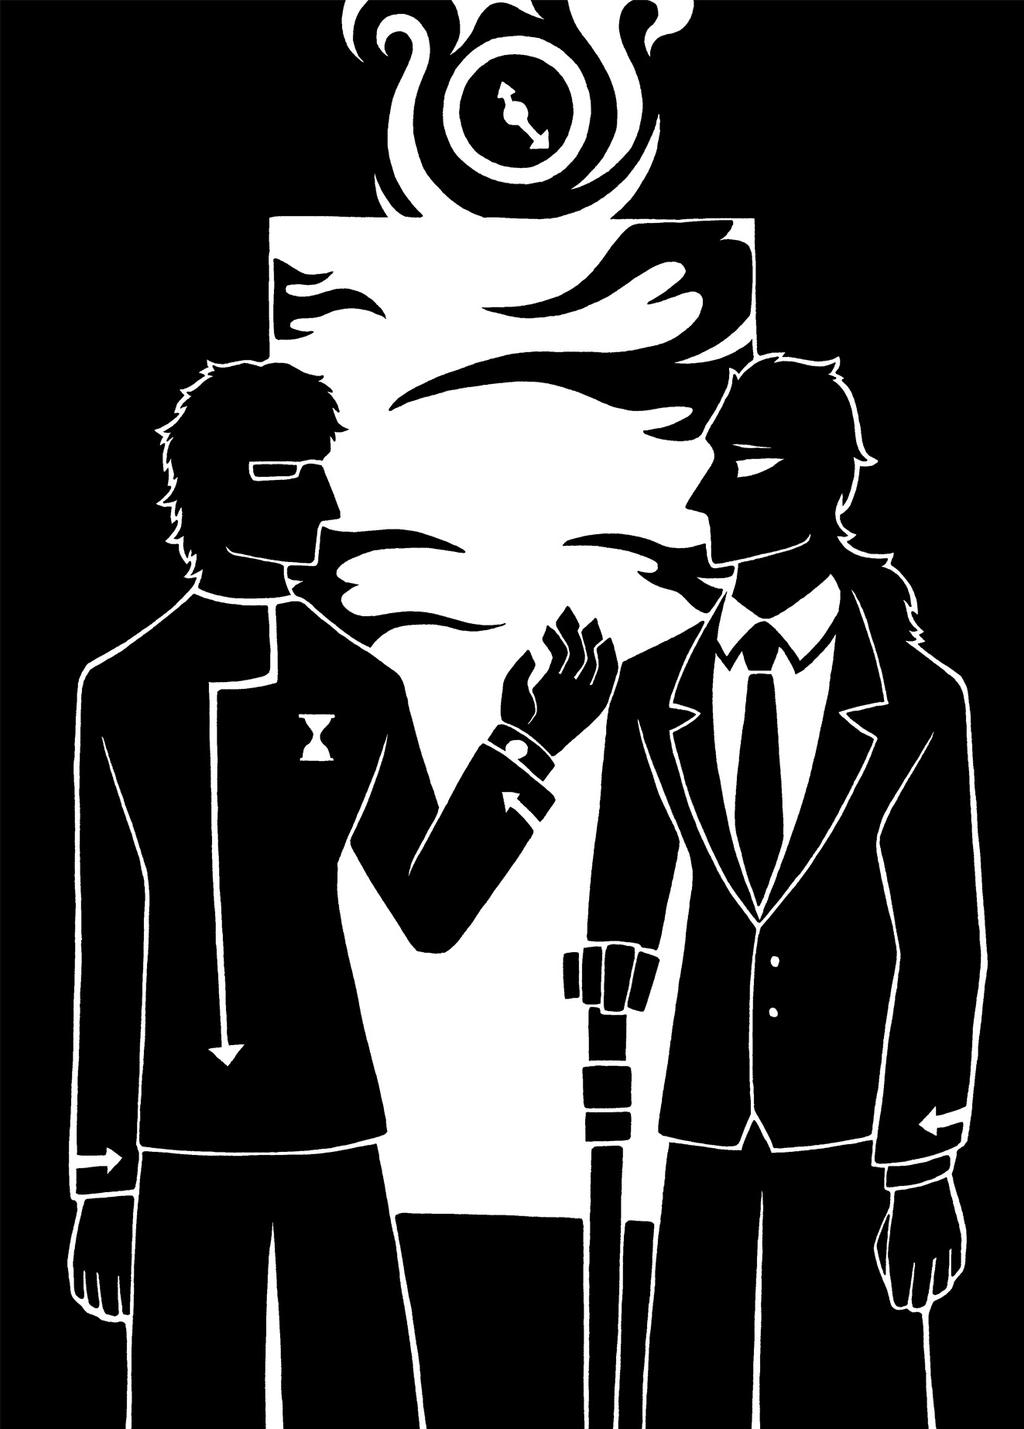 Sunnyclockwork S Artwork Tales Others Scp Foundation